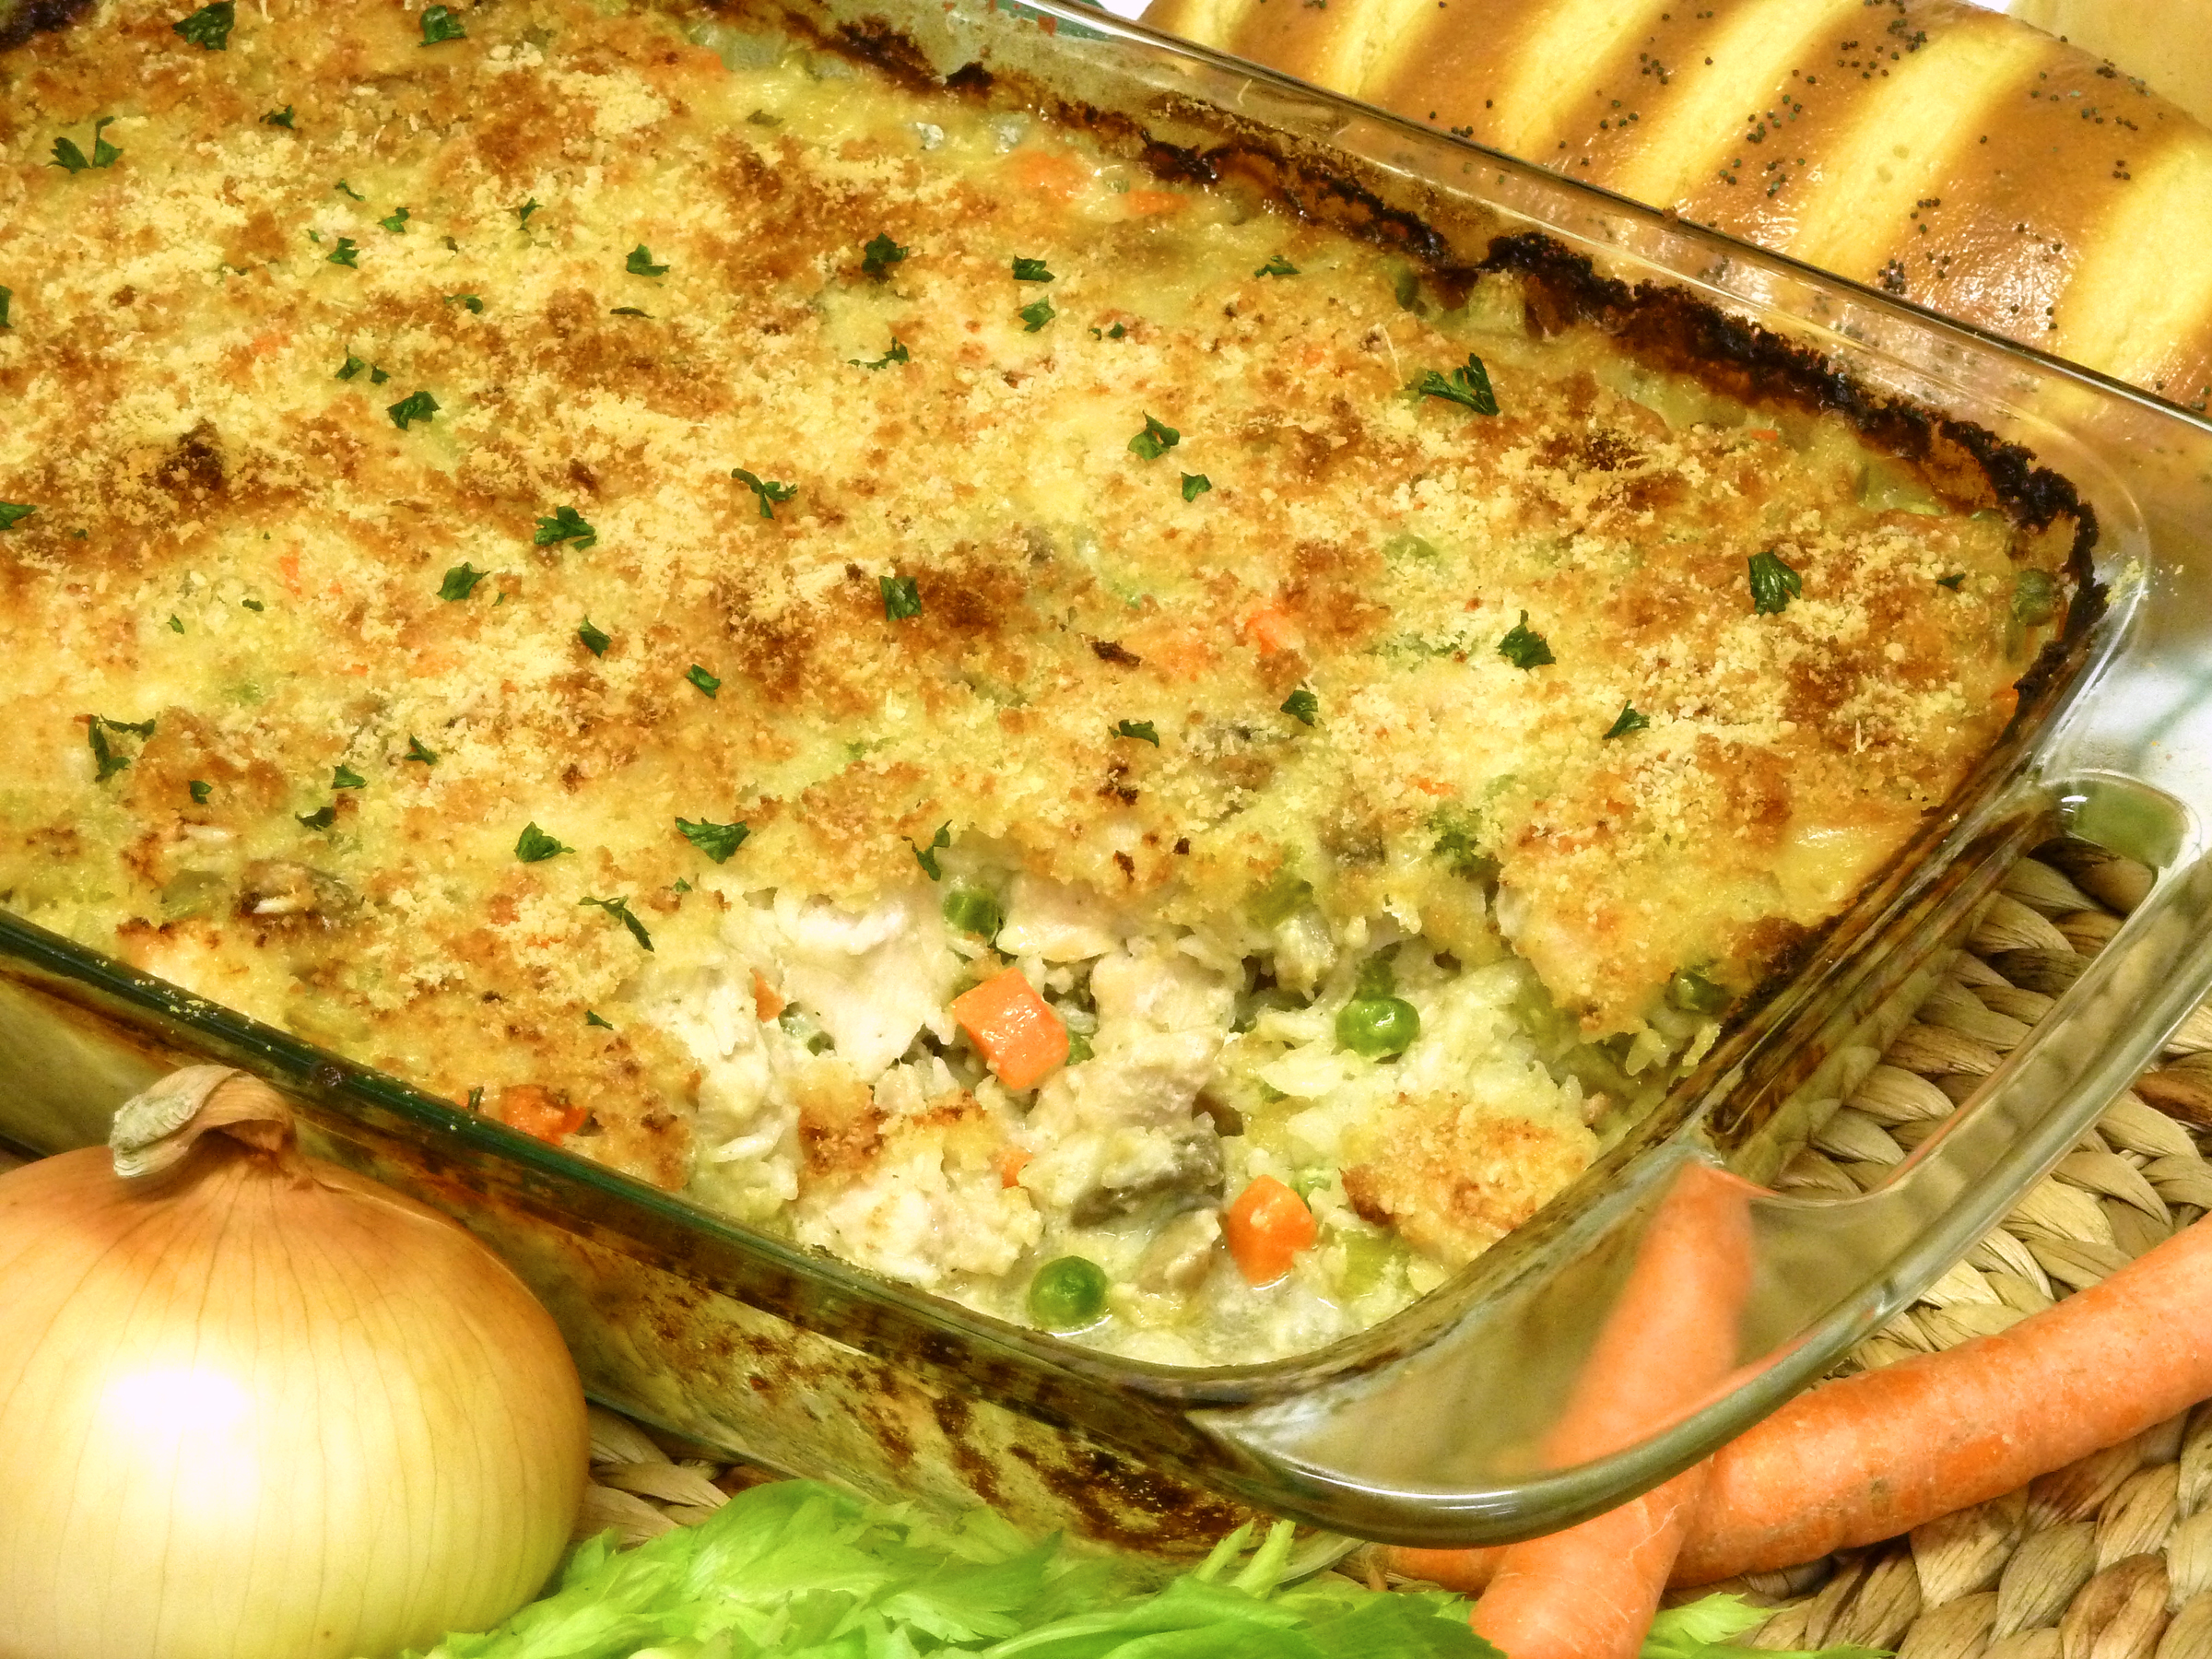 chicken casserole recipe, rice, cheese, receipts